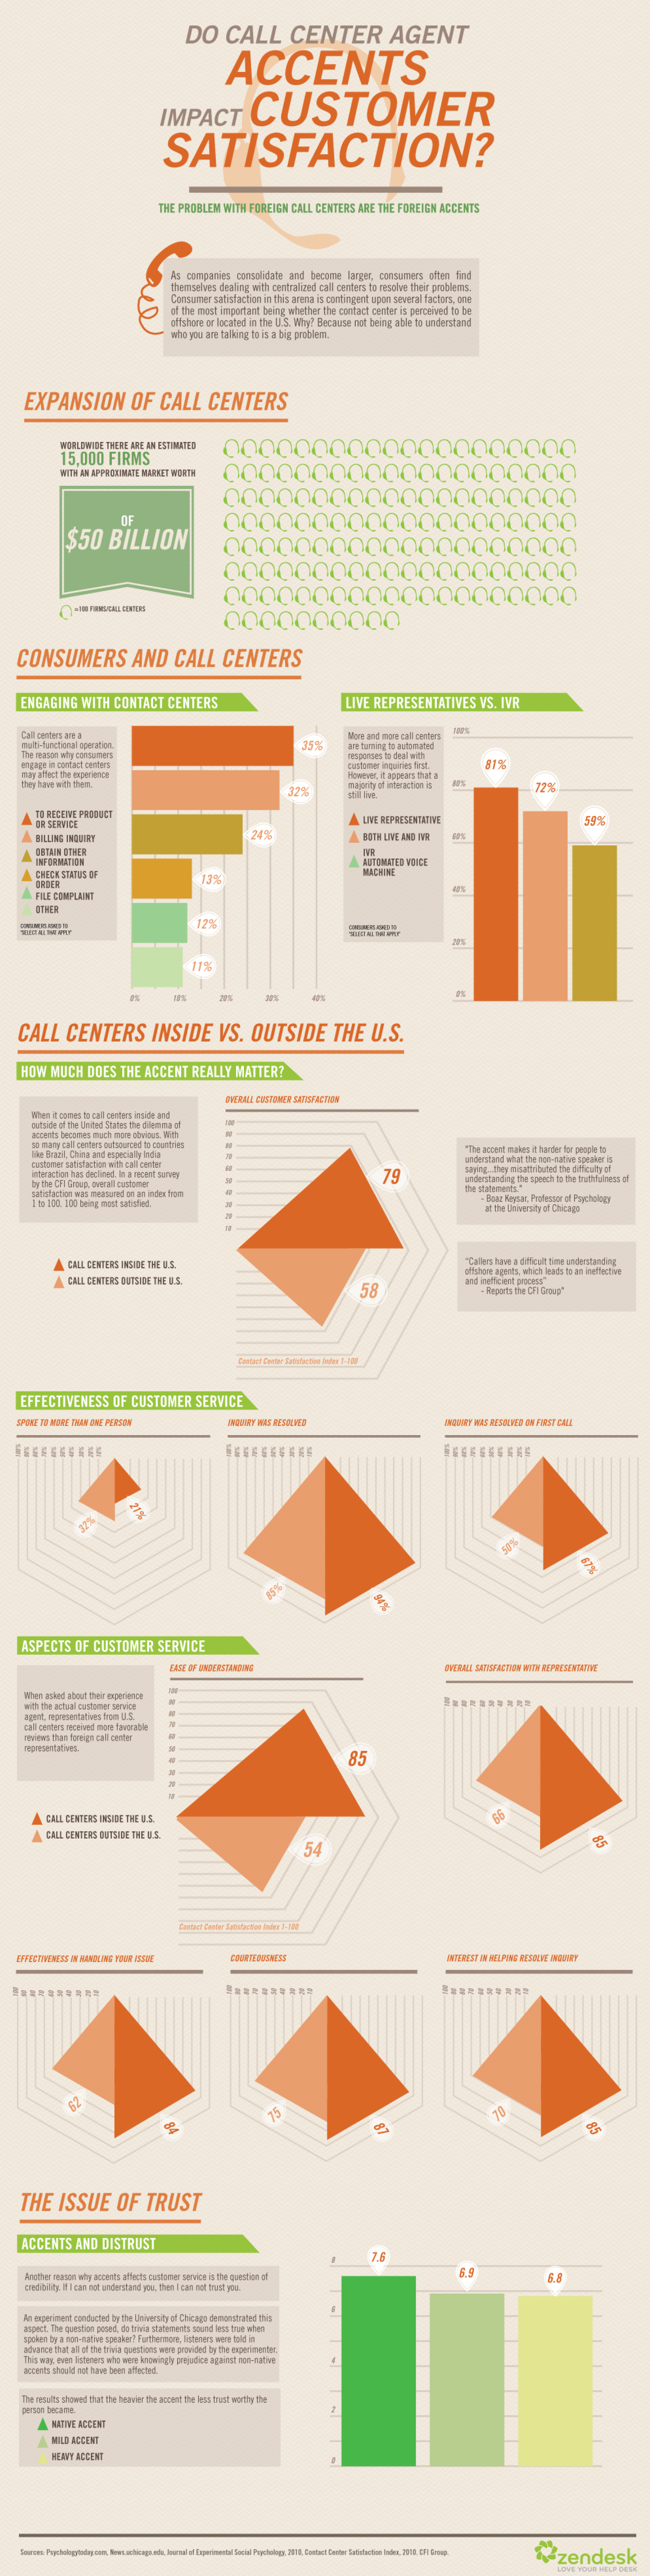 How Outsourced Call Centers Impact Customer Satisfaction Infographic